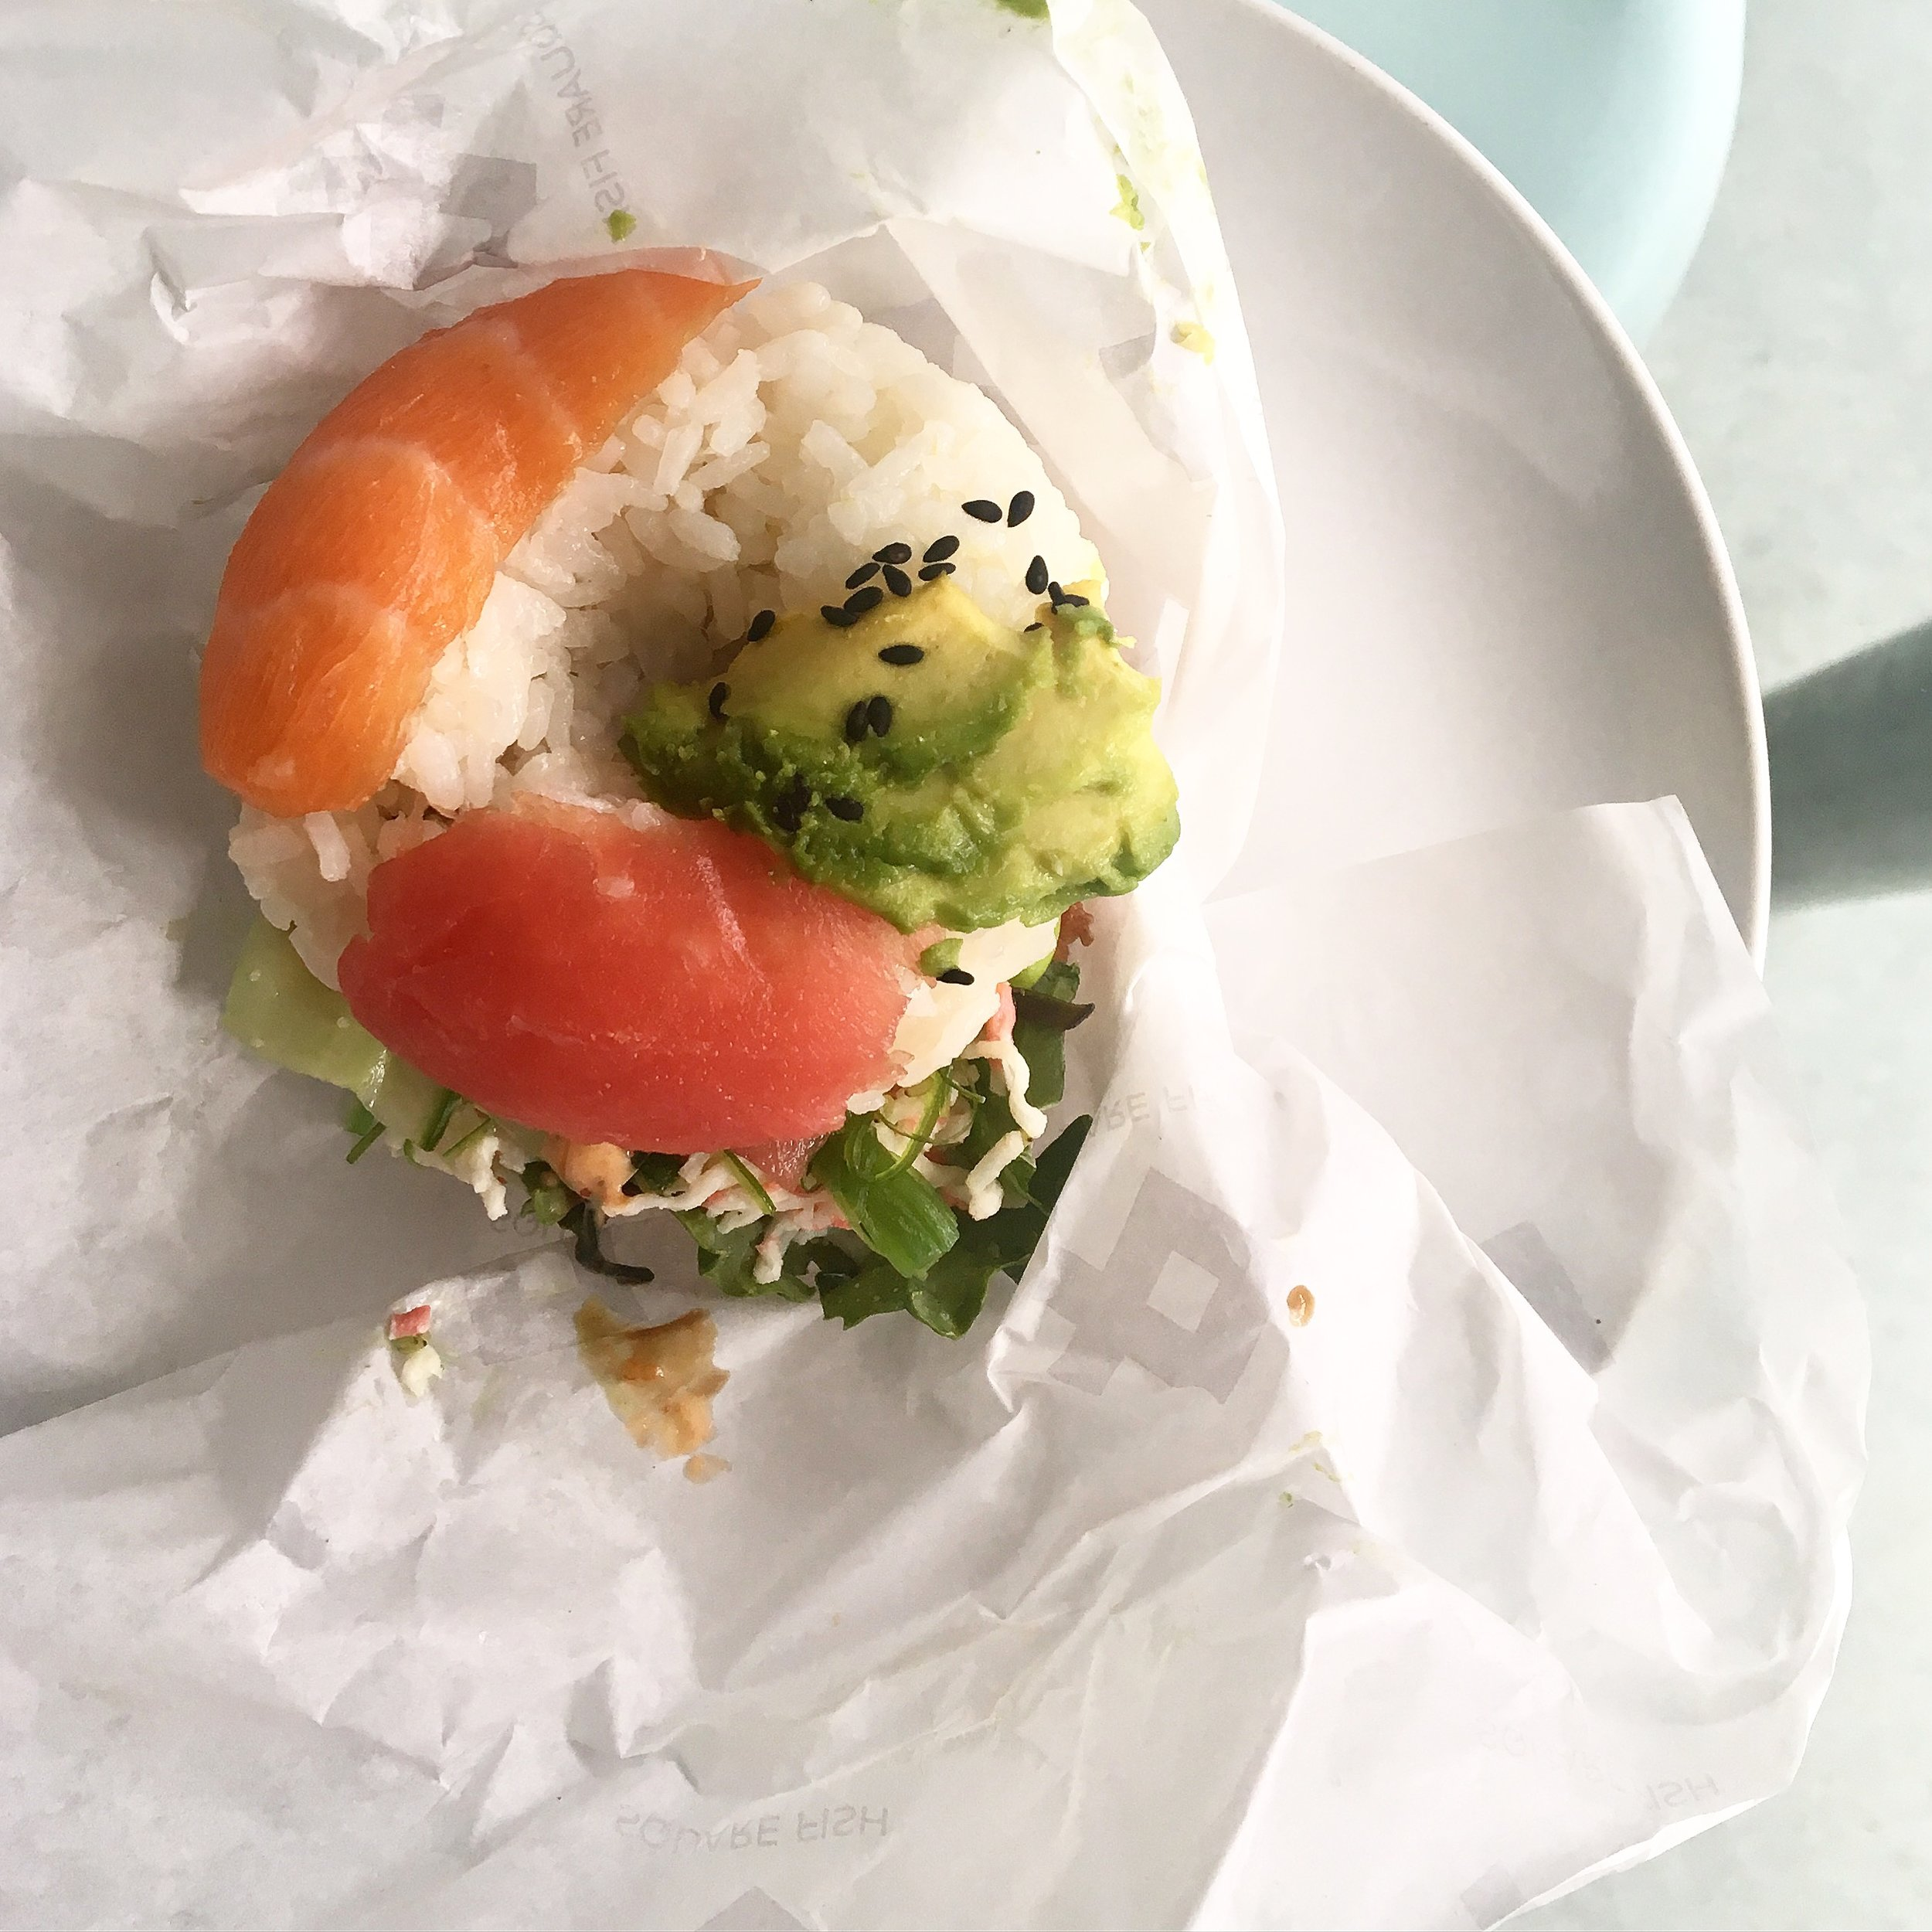 I finally had a sushi donut from  Square Fish , which was in walking distance from our Air BNB. They used high quality ingredients and was the perfect pre-dinner snack (I split one with Dan). I'm on board with this sushi trend.